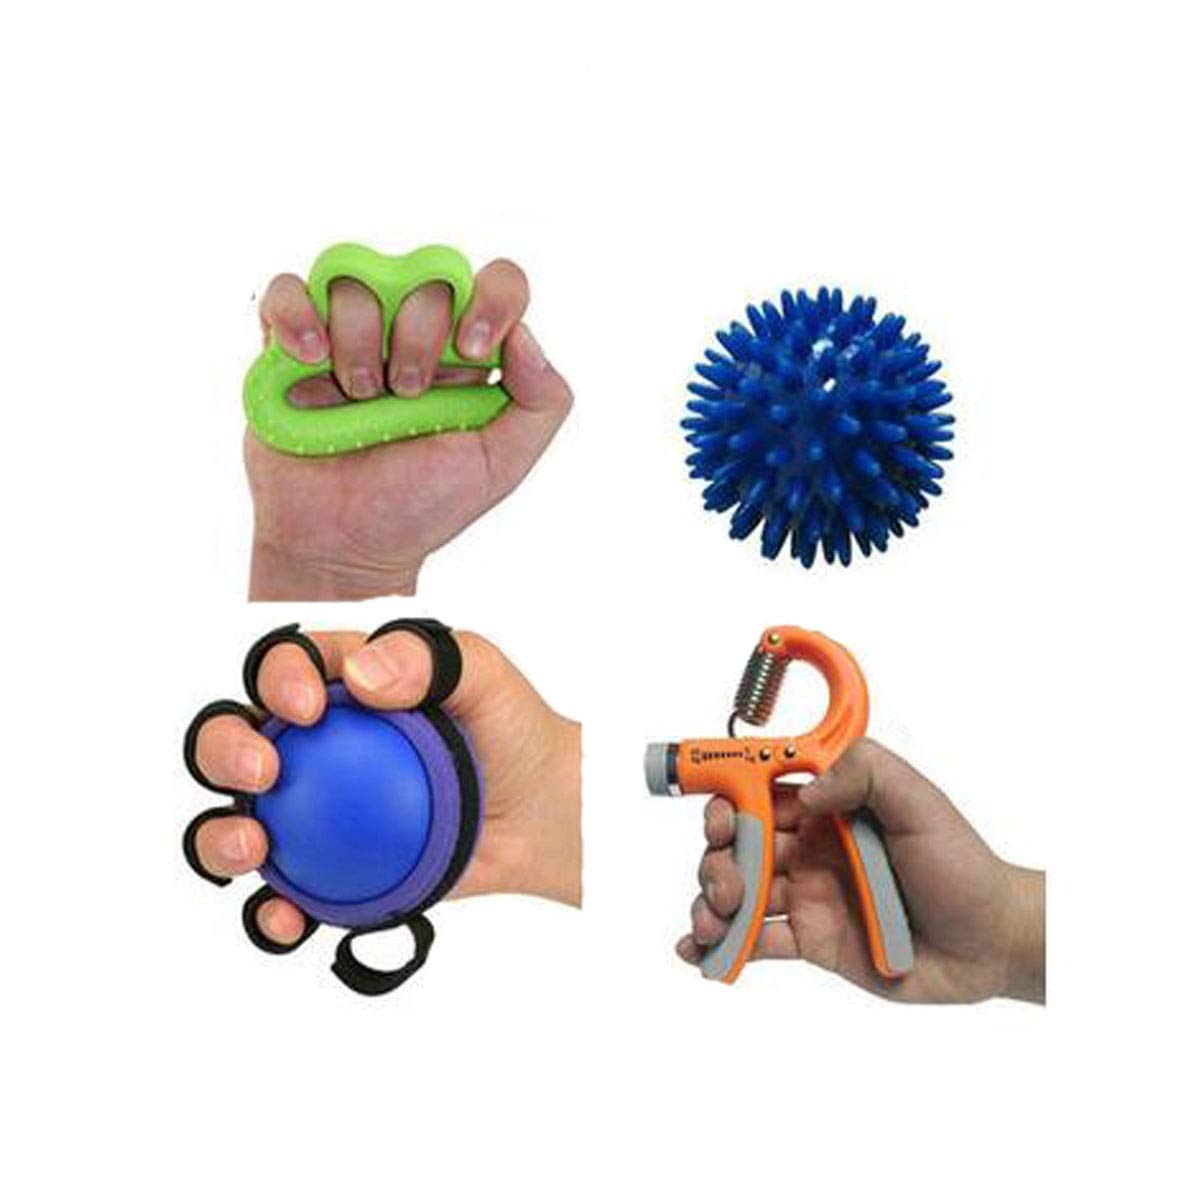 Jiansheng Hand Grip, Silicone Professional Exercise Hand Equipment Female Practice Finger Grip Strength Rehabilitation Training Hand Force Training Device, (4 / Box) (Color : Color B)